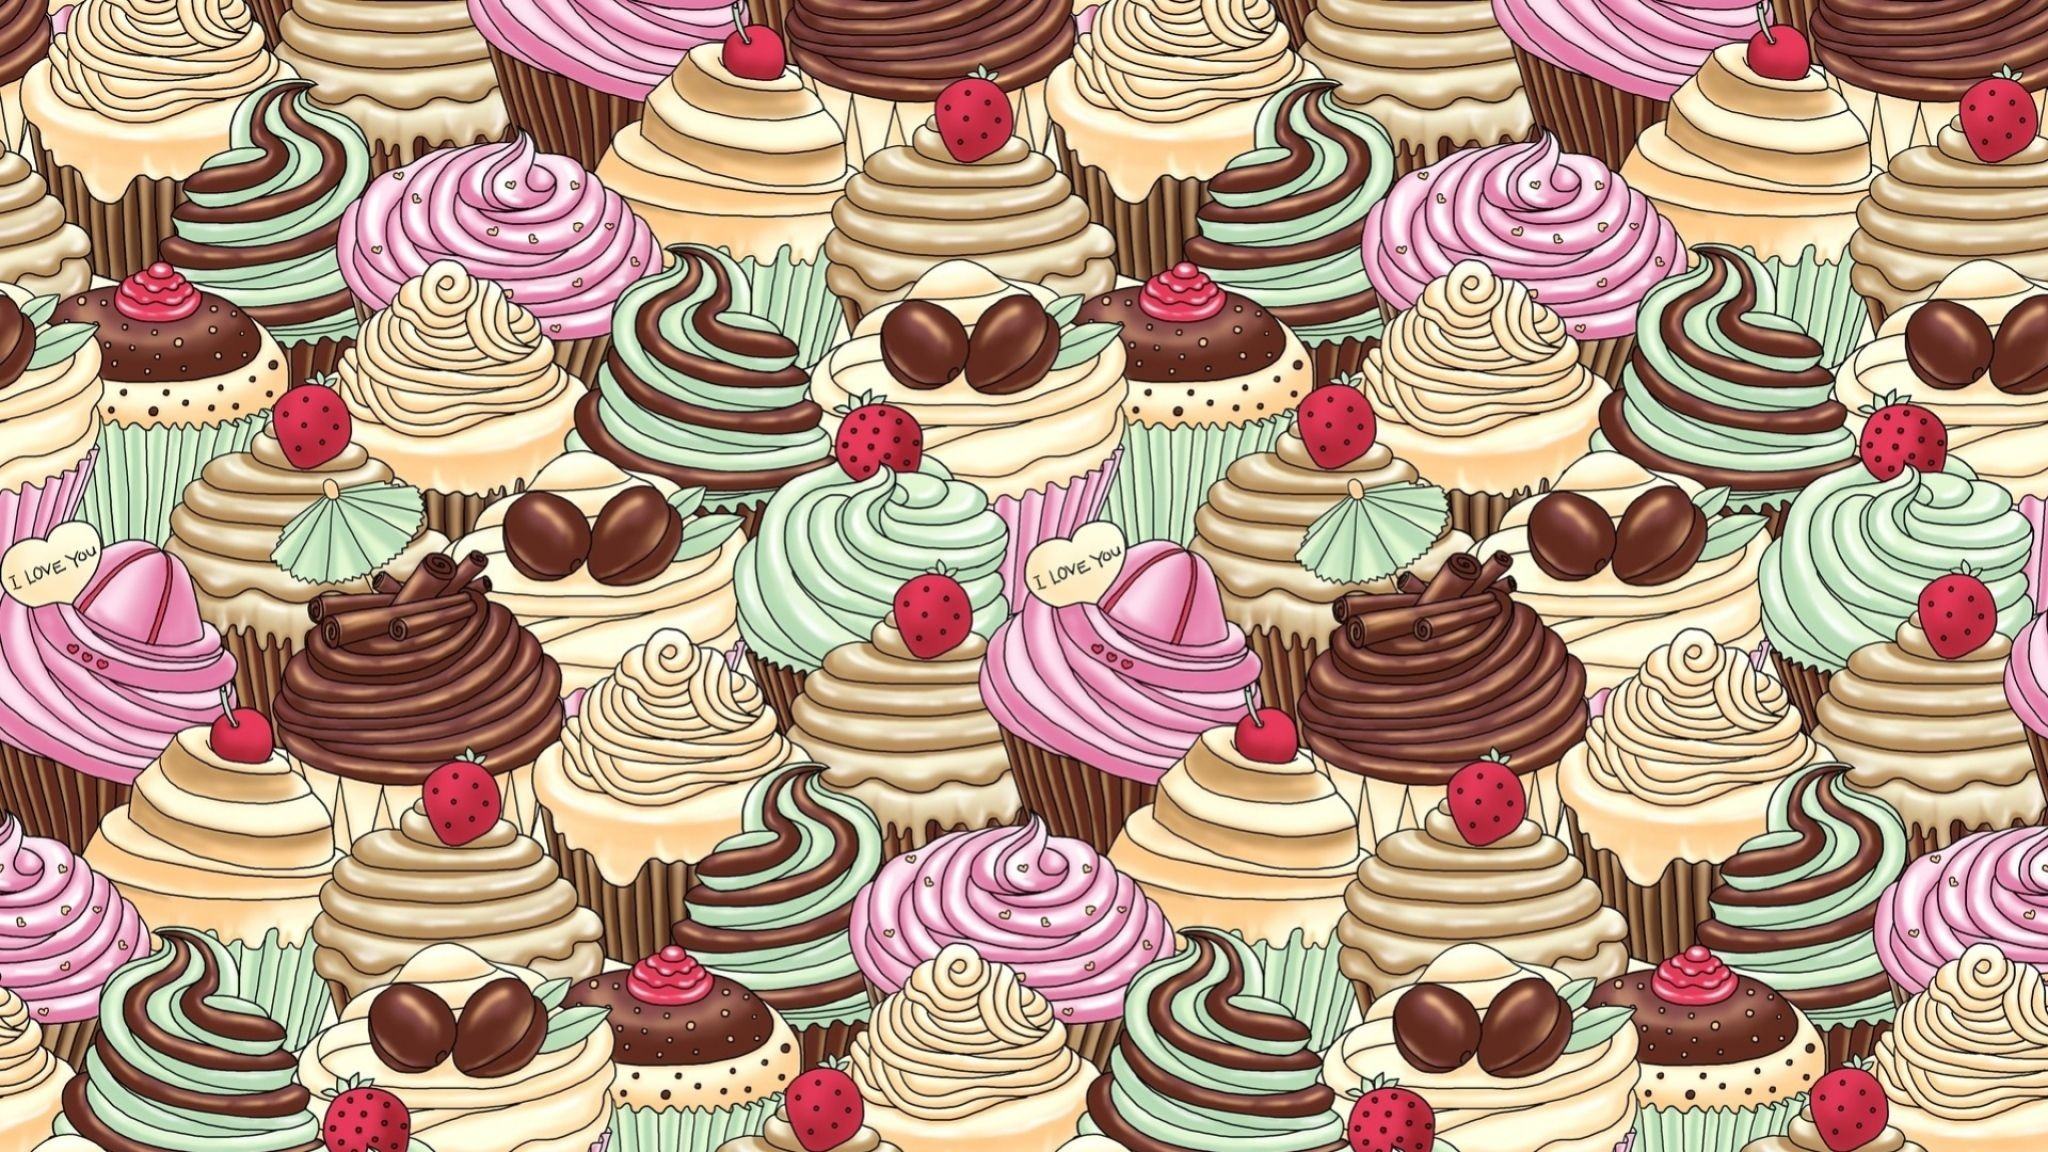 Res: 2048x1152, Cute Cupcake Wallpapers